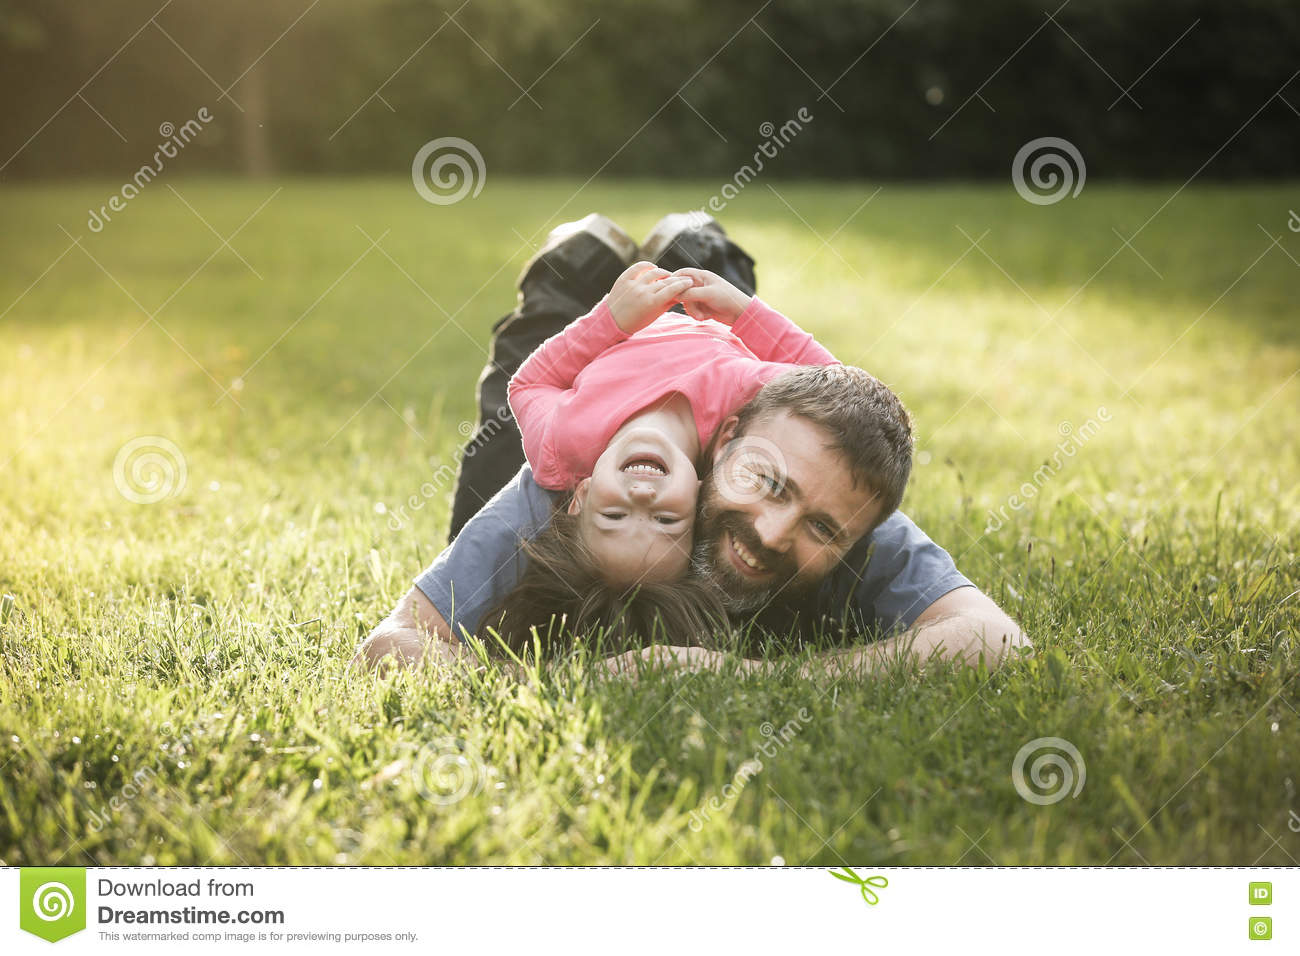 Devoted father and daughter lying on grass